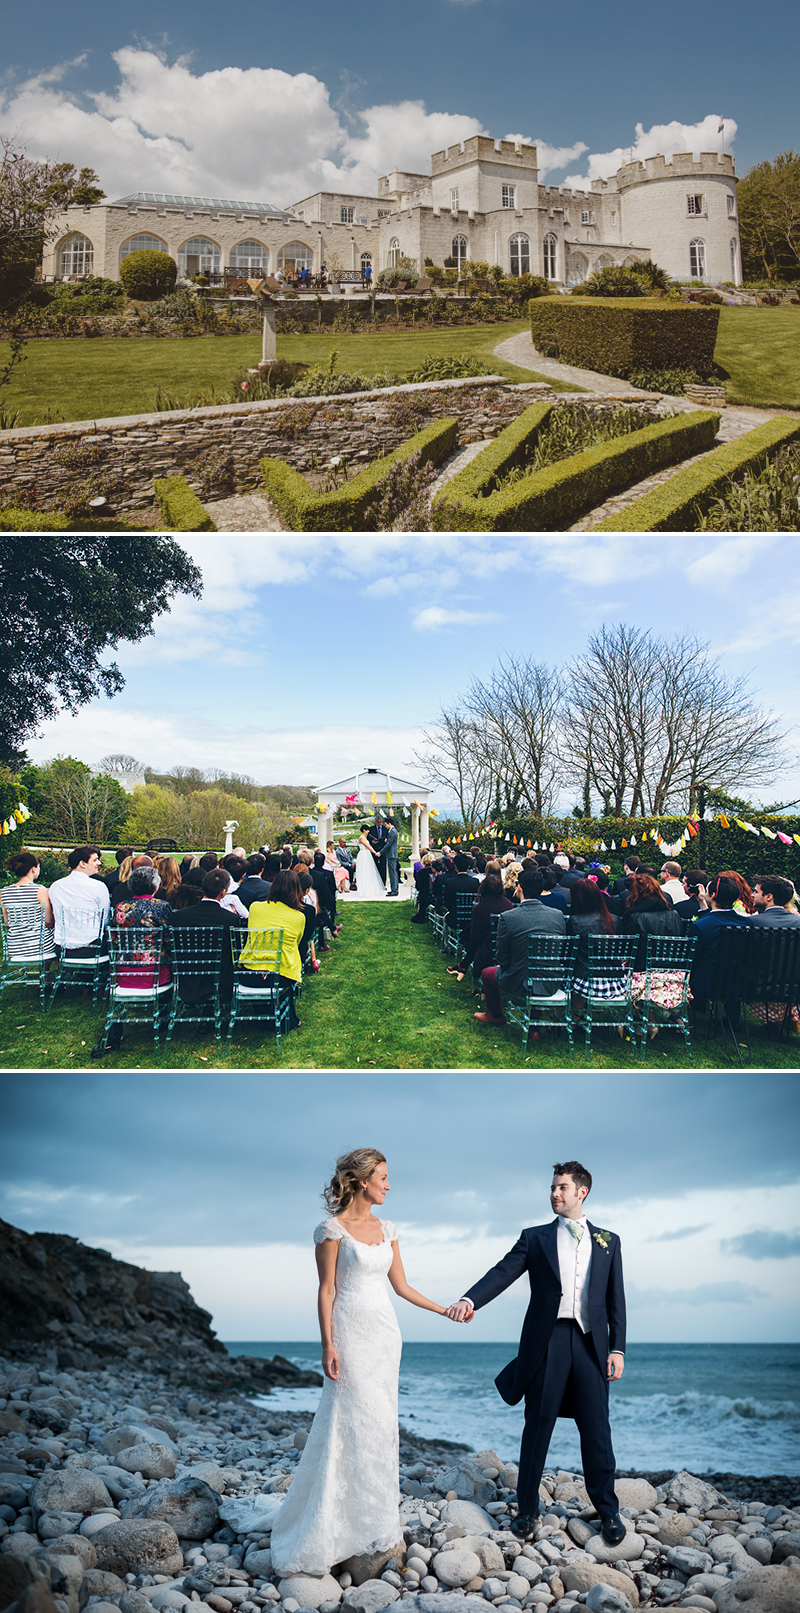 dorset-wedding-venue-20-percent-spring-offer-the-penn-coco-wedding-venues-layer-2